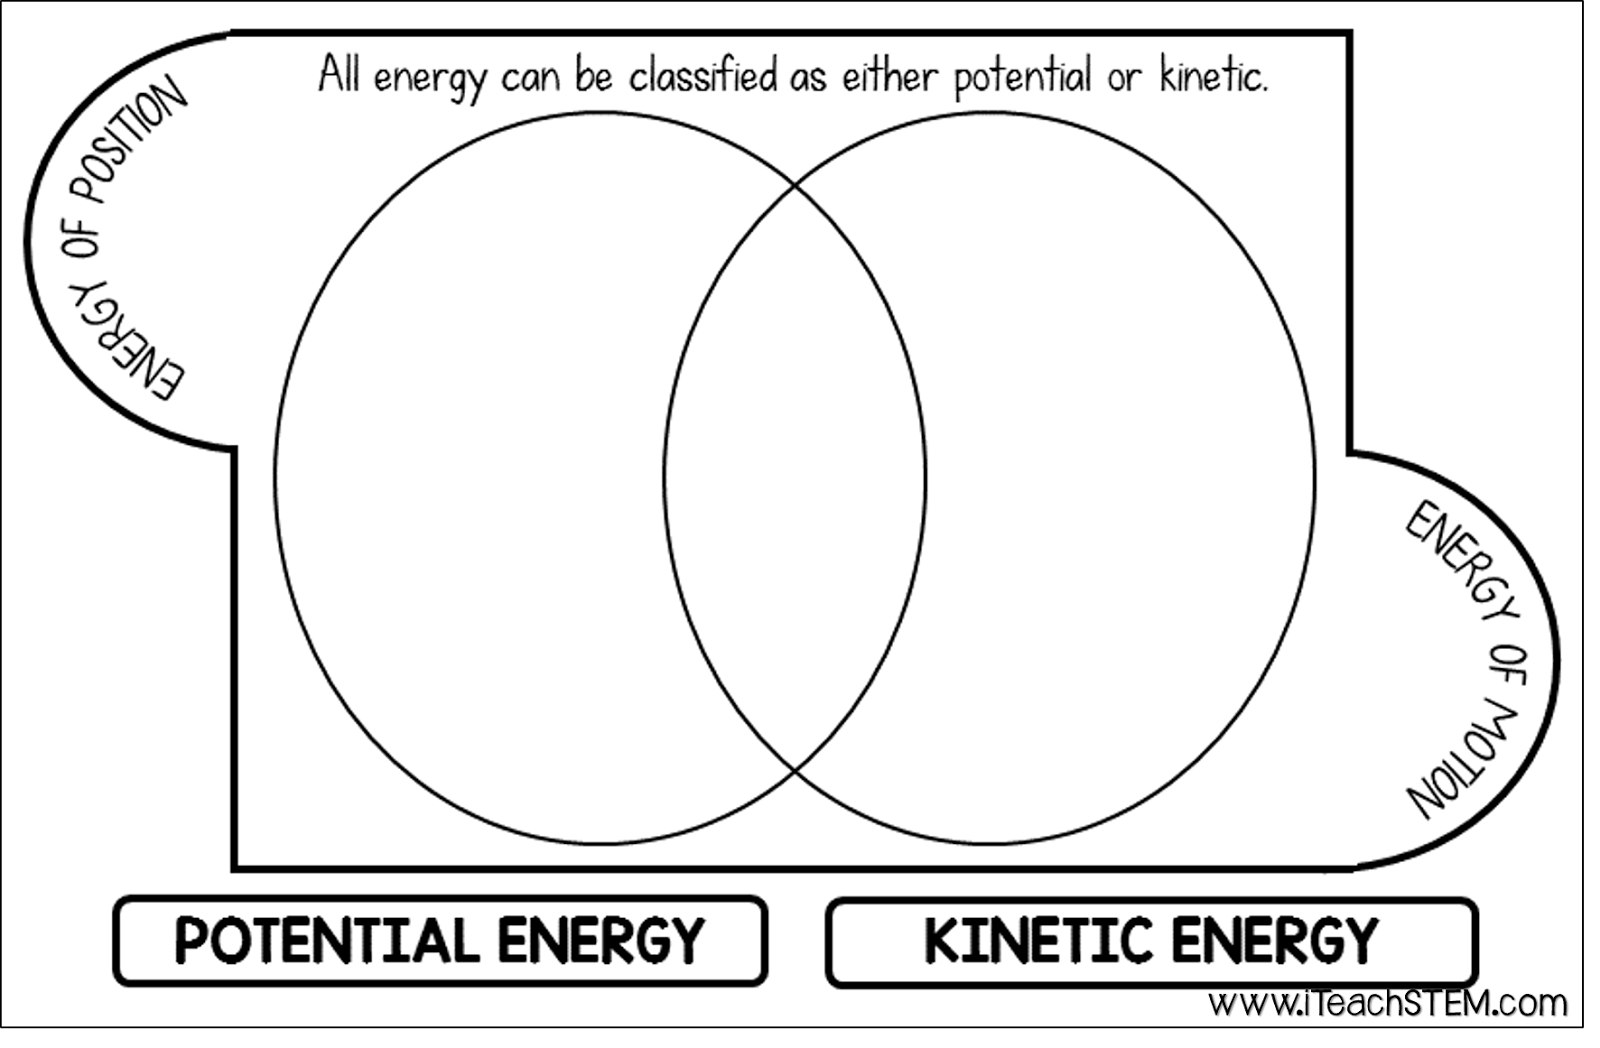 kinetic and potential energy venn diagram pioneer fh x720bt be nungsanleitung deutsch songs in the stem class